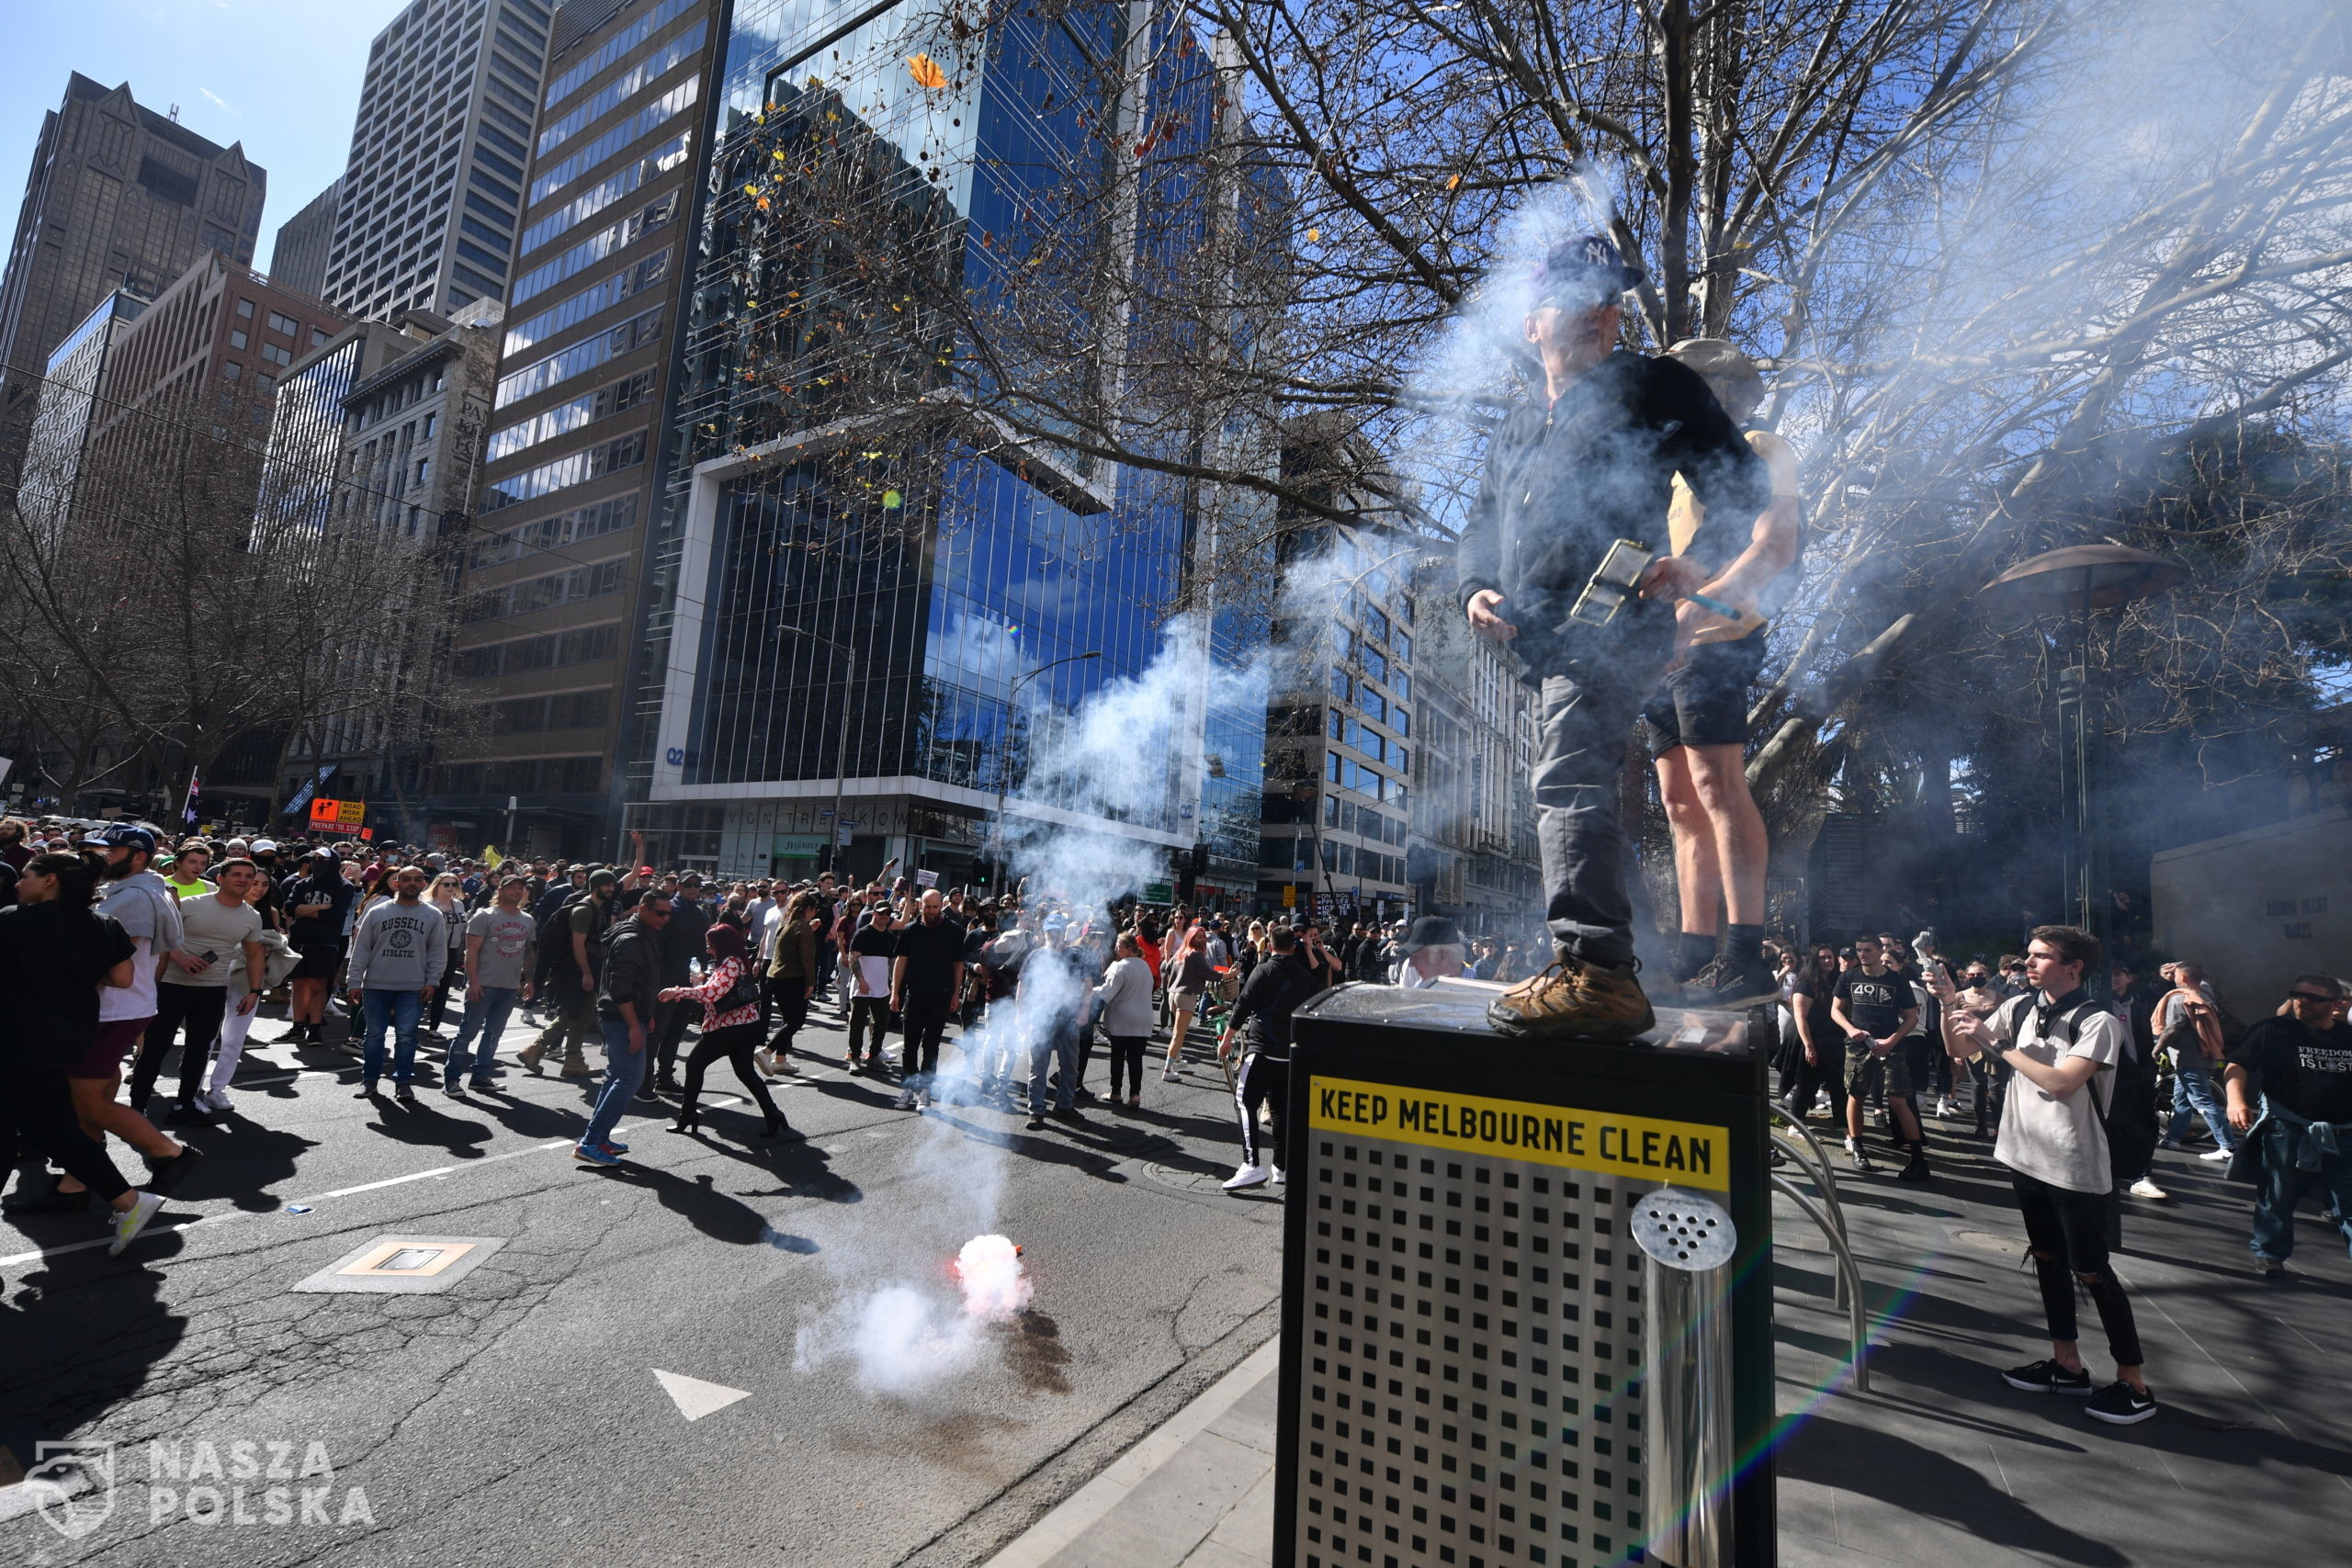 epa09422746 A flare is thrown during an anti-lockdown protest in the central business district of Melbourne, Australia, 21 August 2021.  EPA/JAMES ROSS AUSTRALIA AND NEW ZEALAND OUT  Dostawca: PAP/EPA.